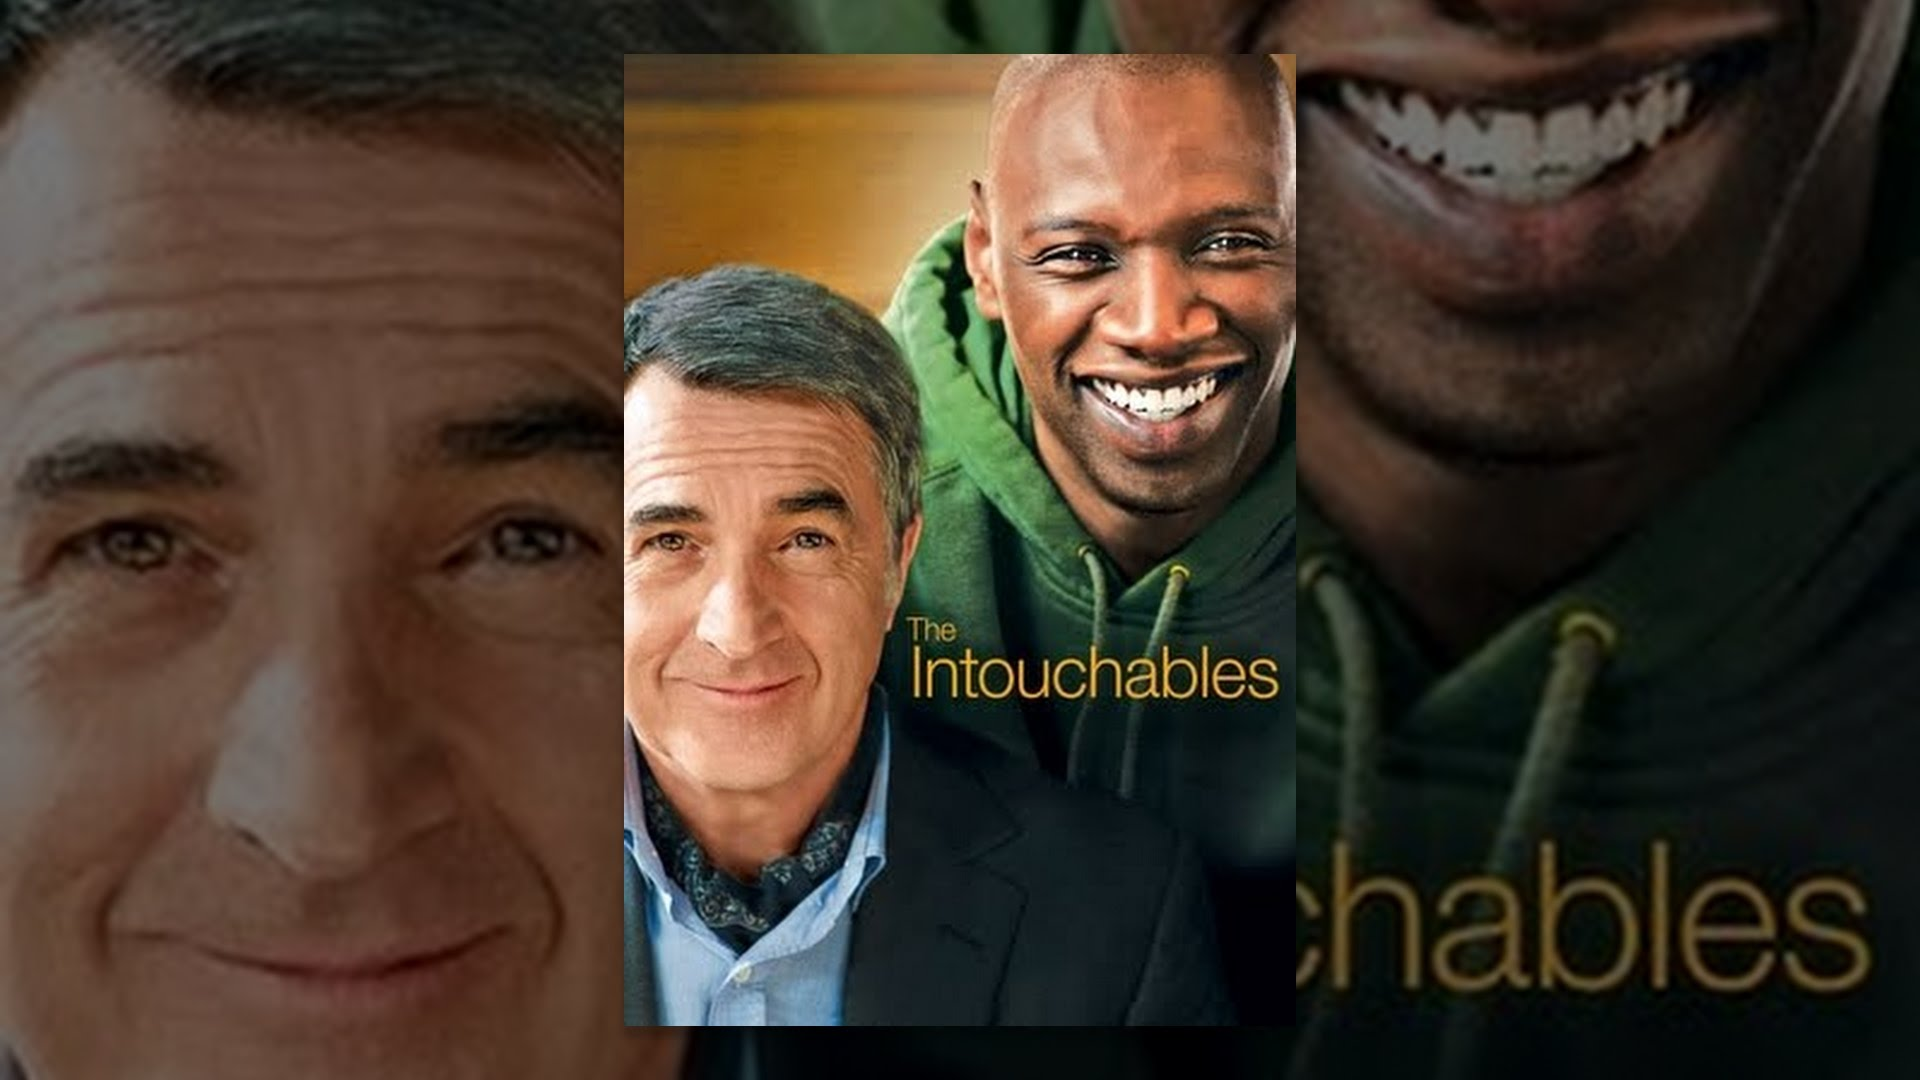 The Intouchables Watch Online